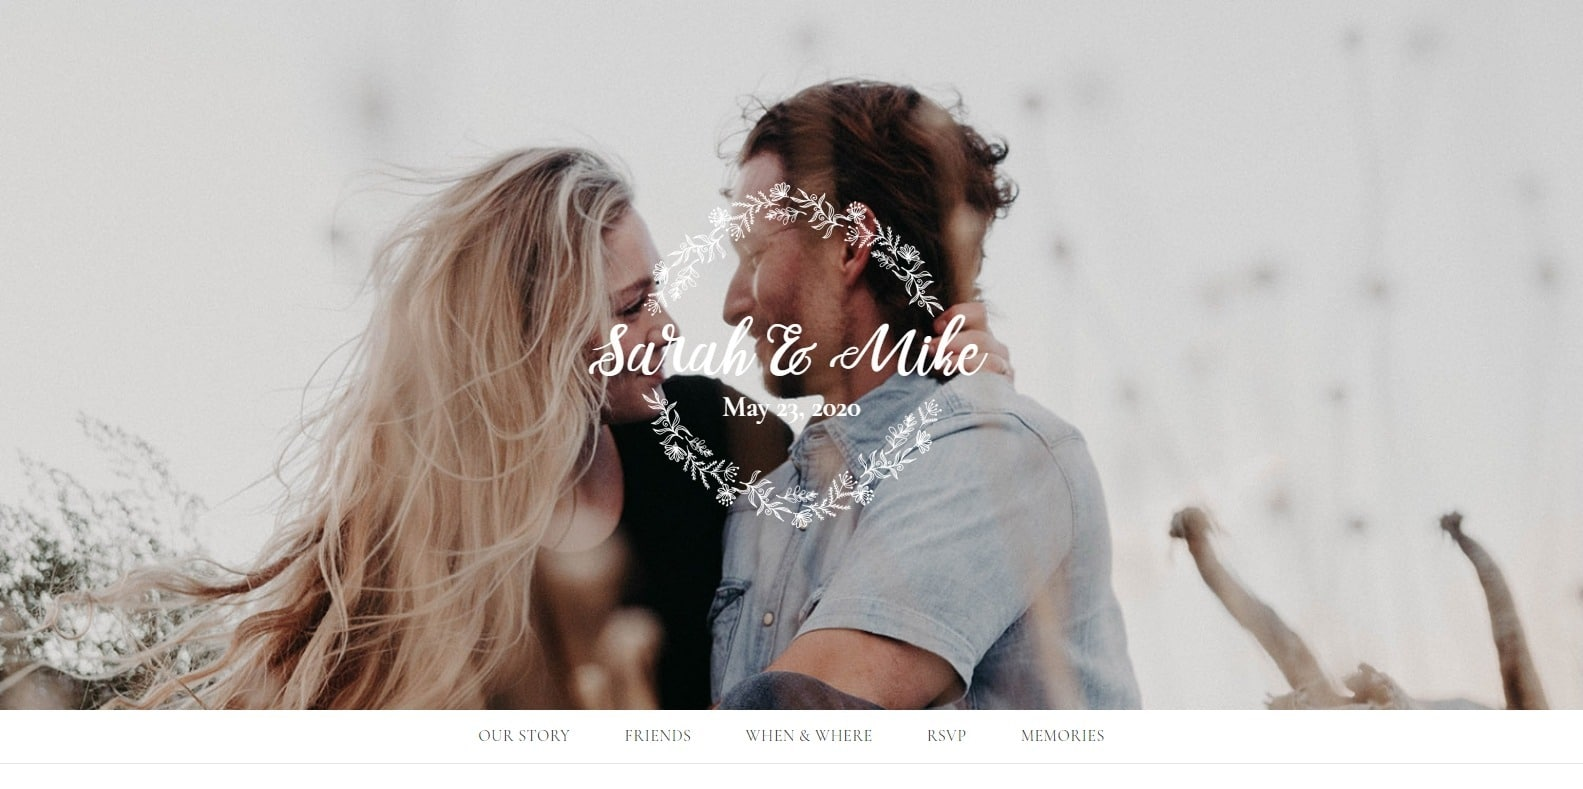 l'amore-wedding-website-template